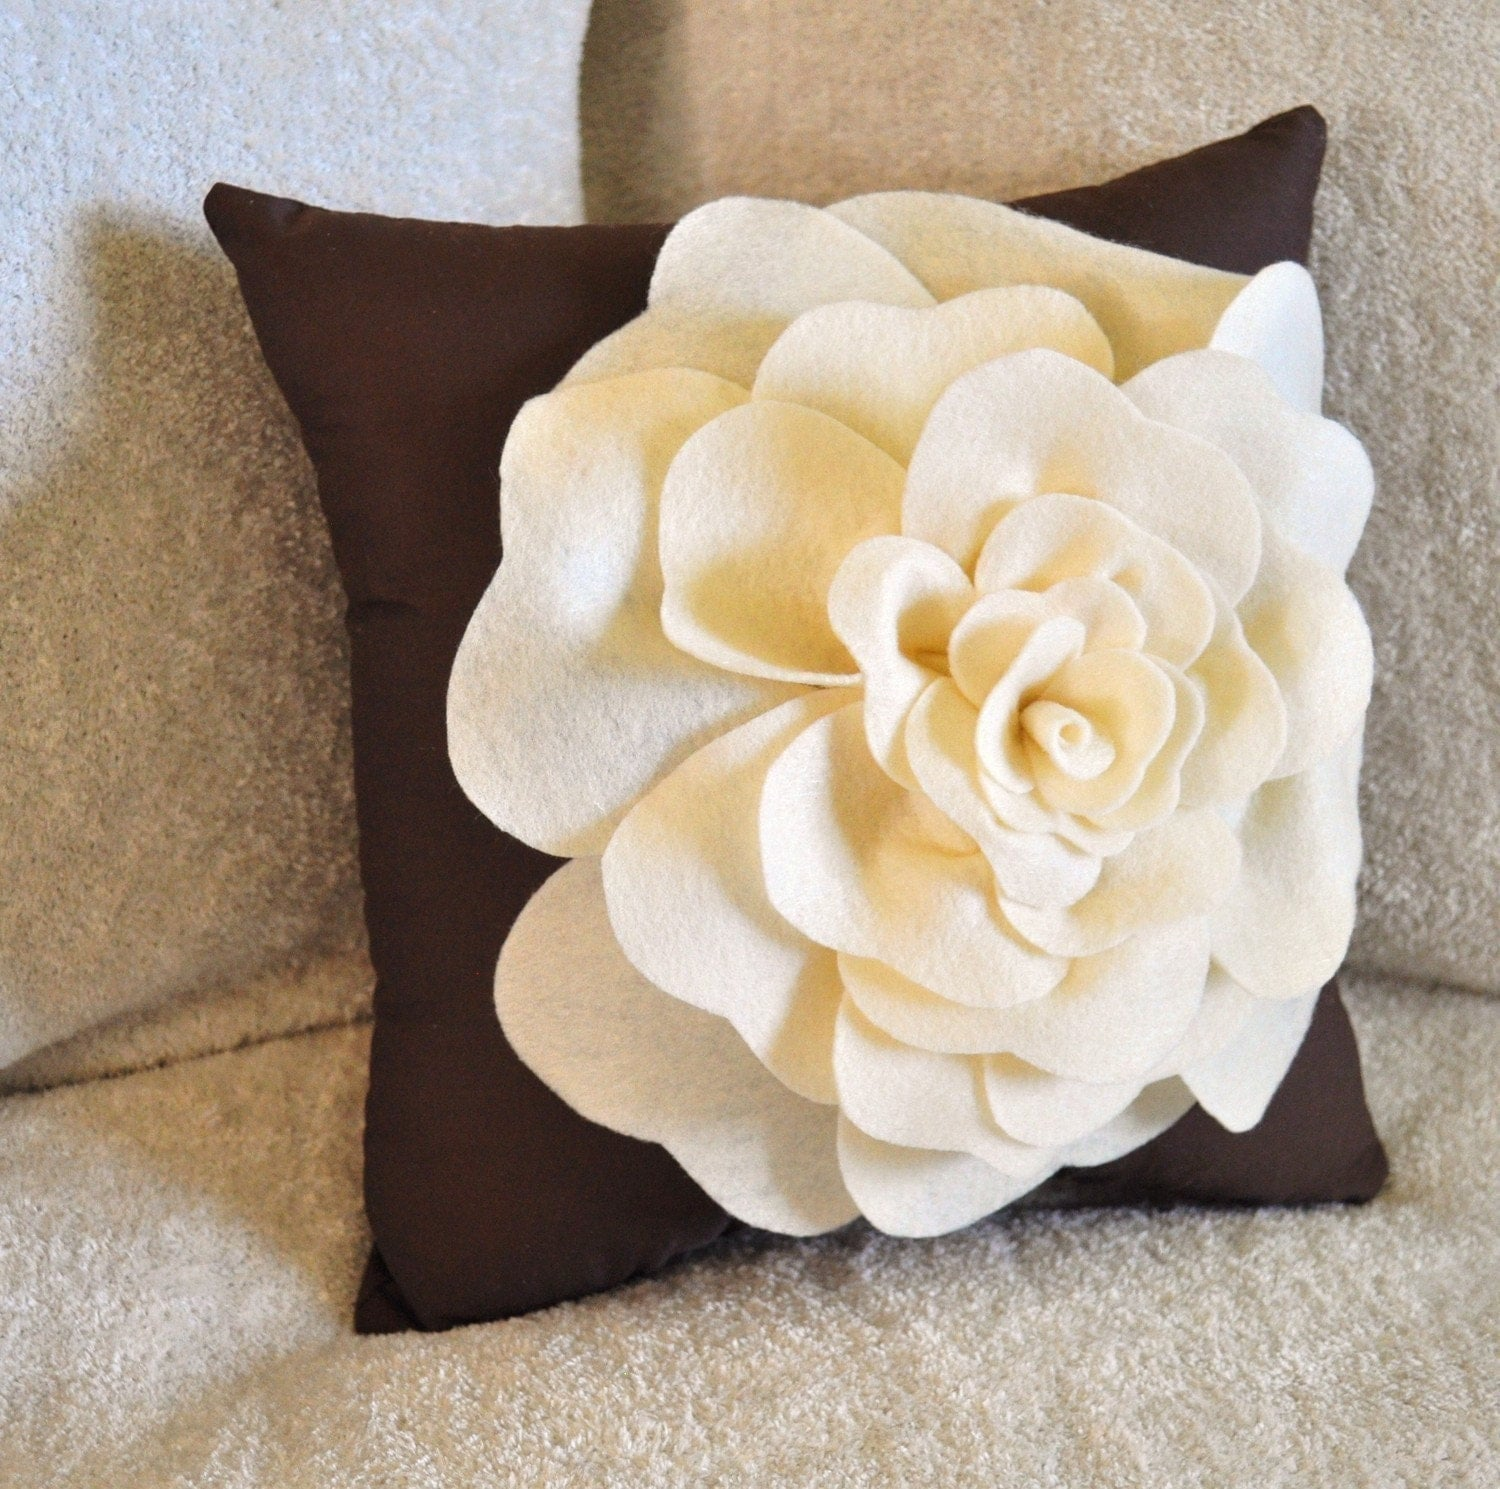 Decorative Cream Pillows : Cream and Brown Decorative Pillow Rose Pillow 14 x14